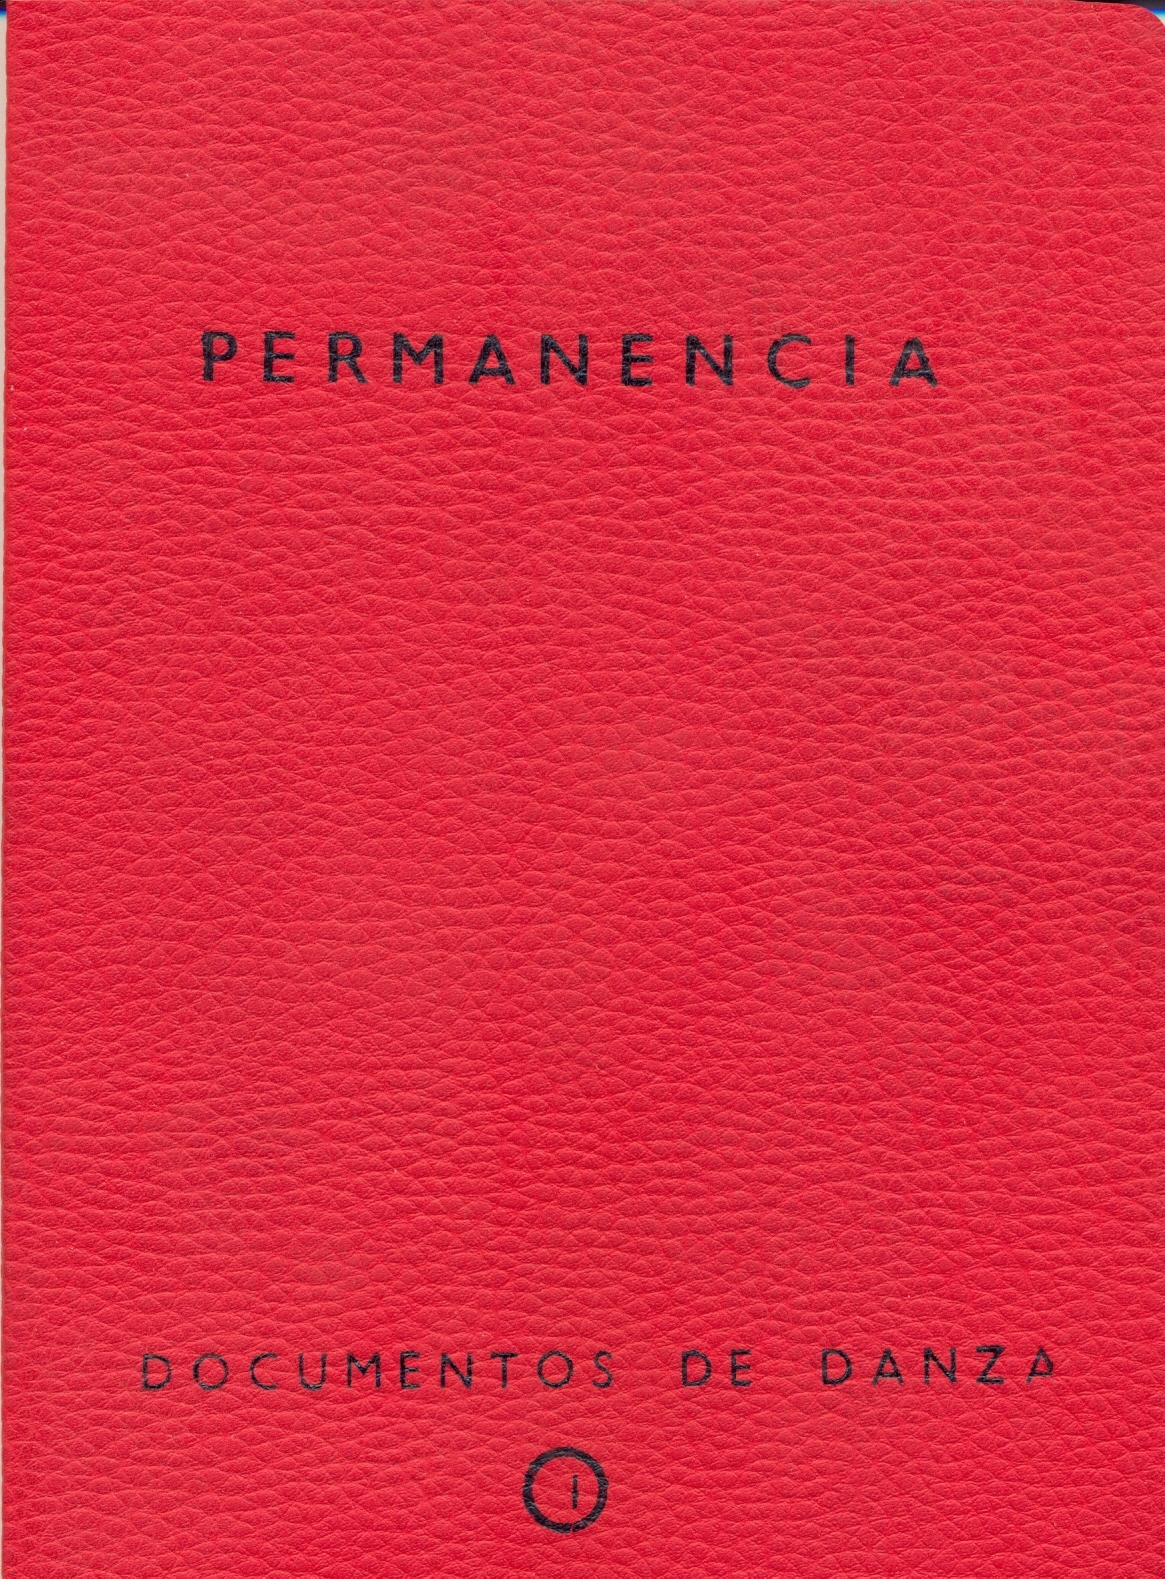 PERMANENCIA. DOCUMENTOS DE DANZA